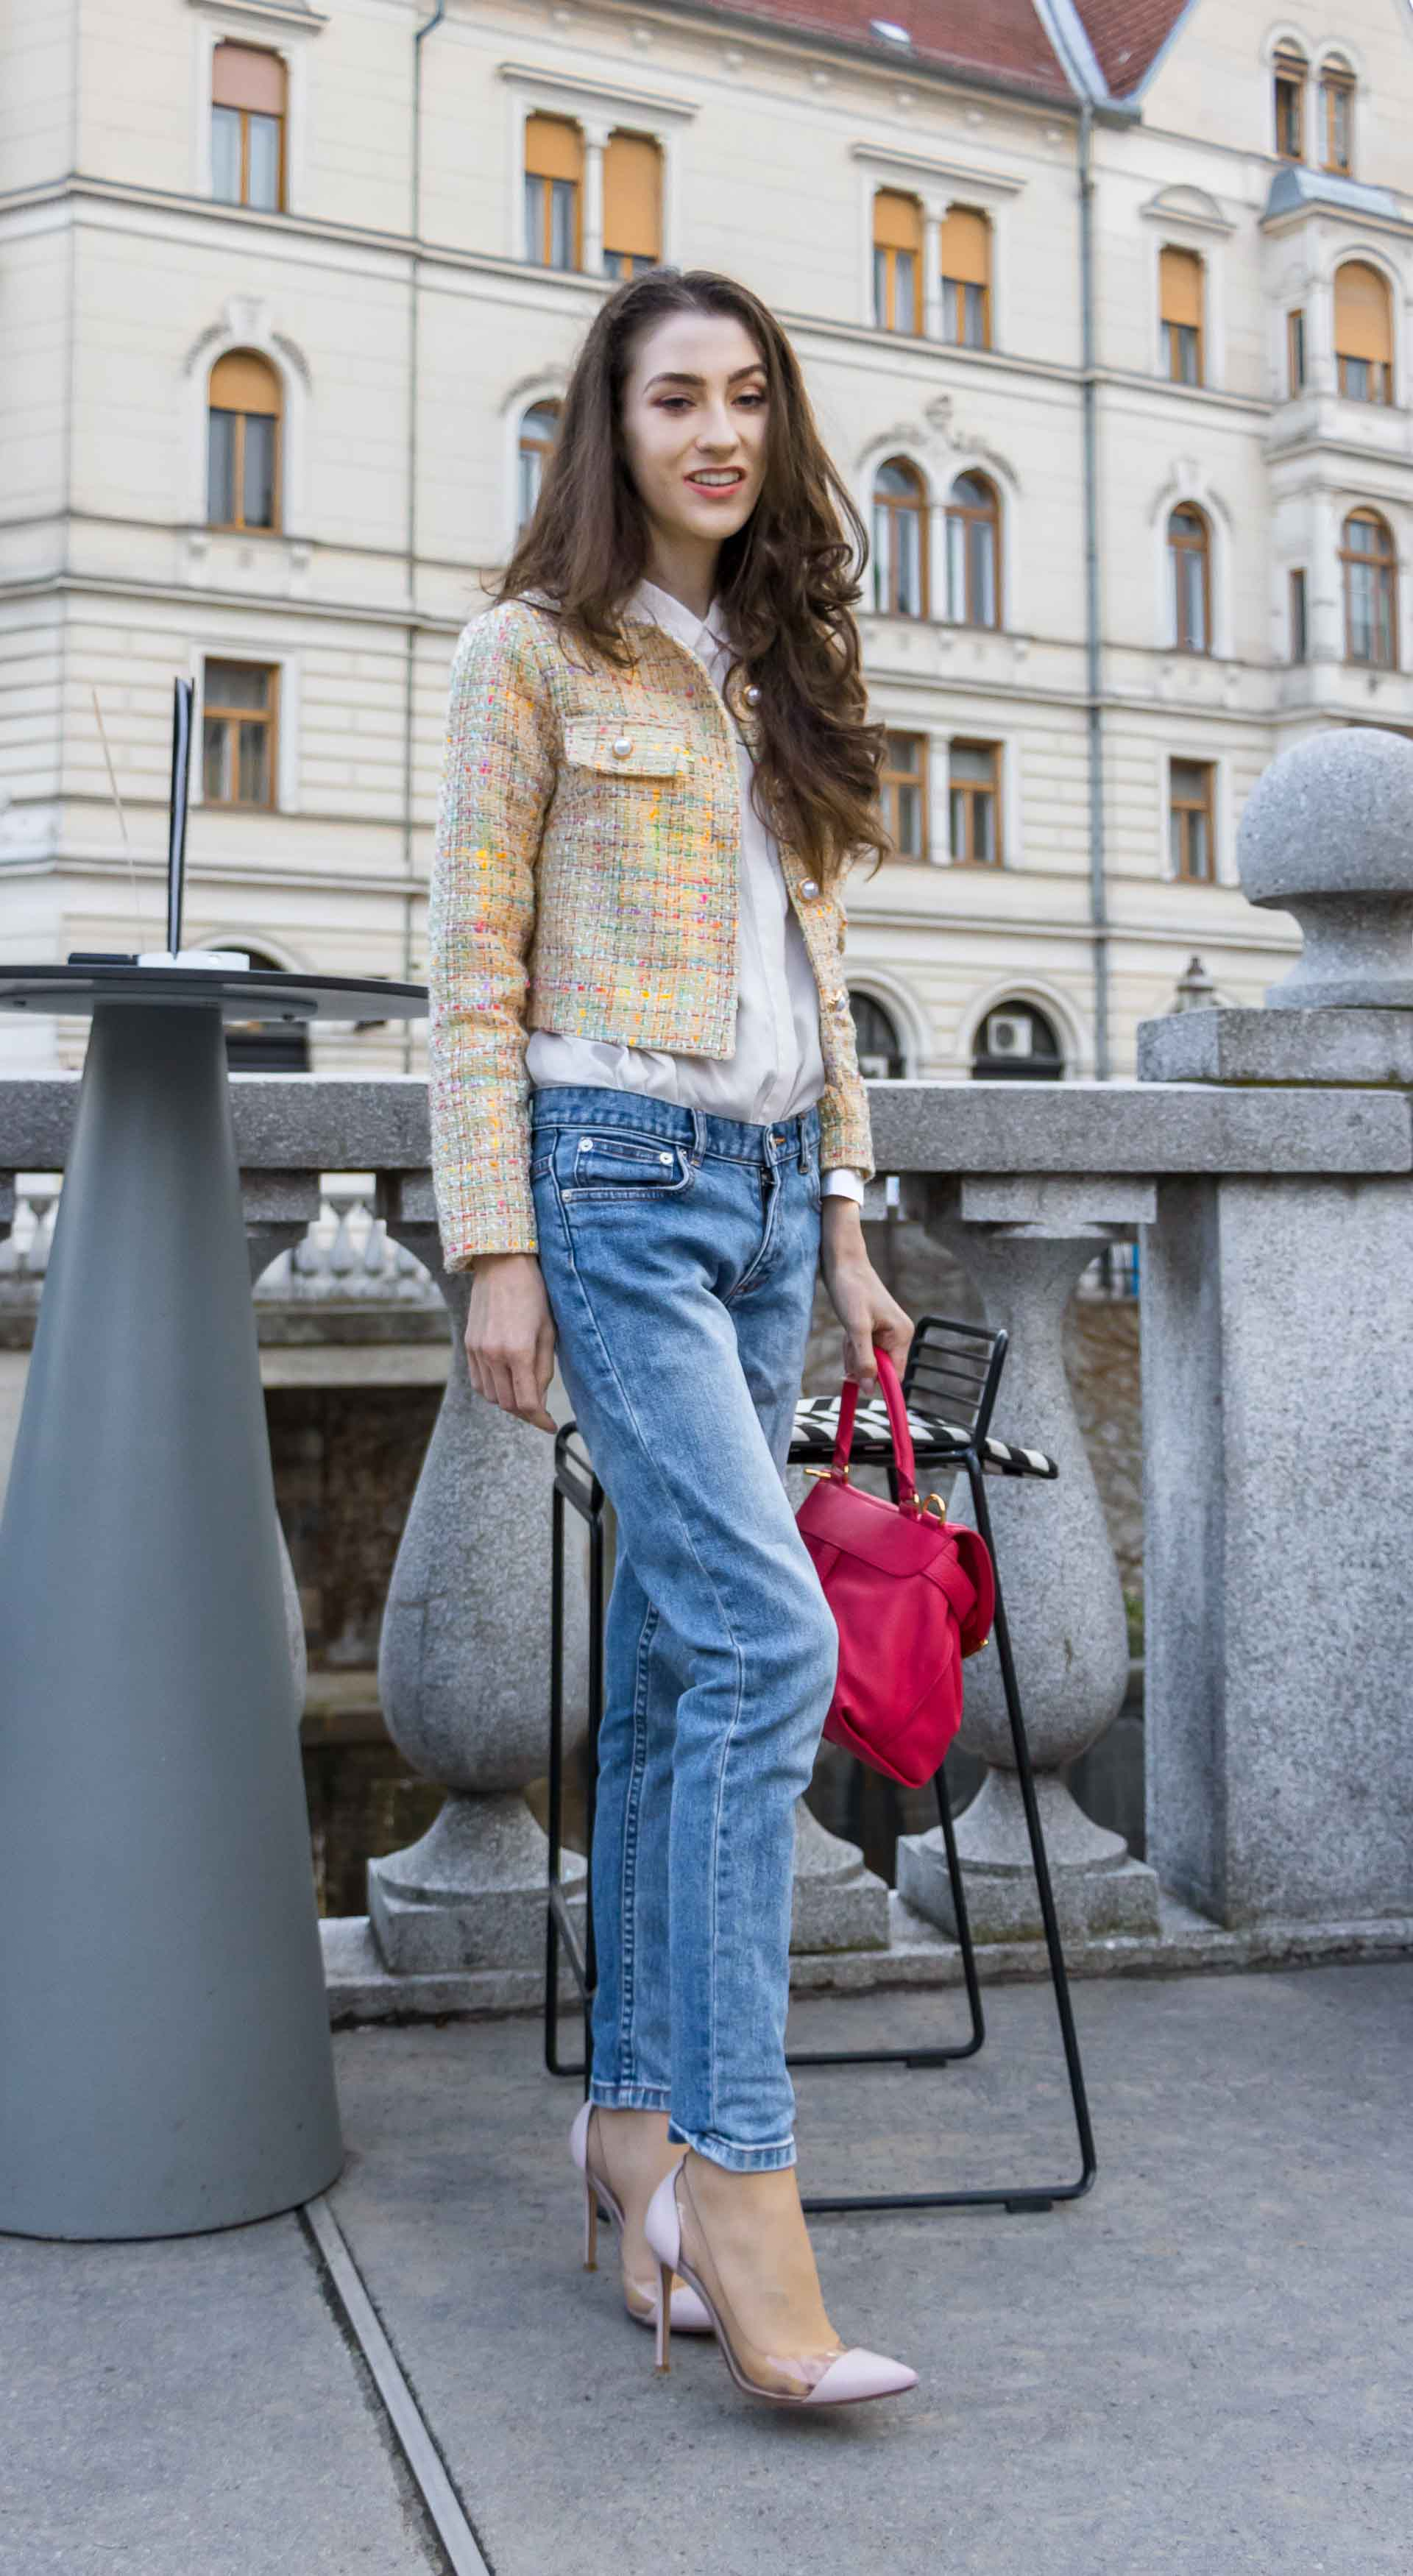 Veronika Lipar Fashion Blogger of Brunette from Wall Street dressed in chic casual everyday spring outfit, the yellow tweed jacket from Storets, blue jeans from A.P.C., blush Gianvito Rossi plexi pumps, pink top handle bag and organza white shirt while standing by a bar stole outdoors